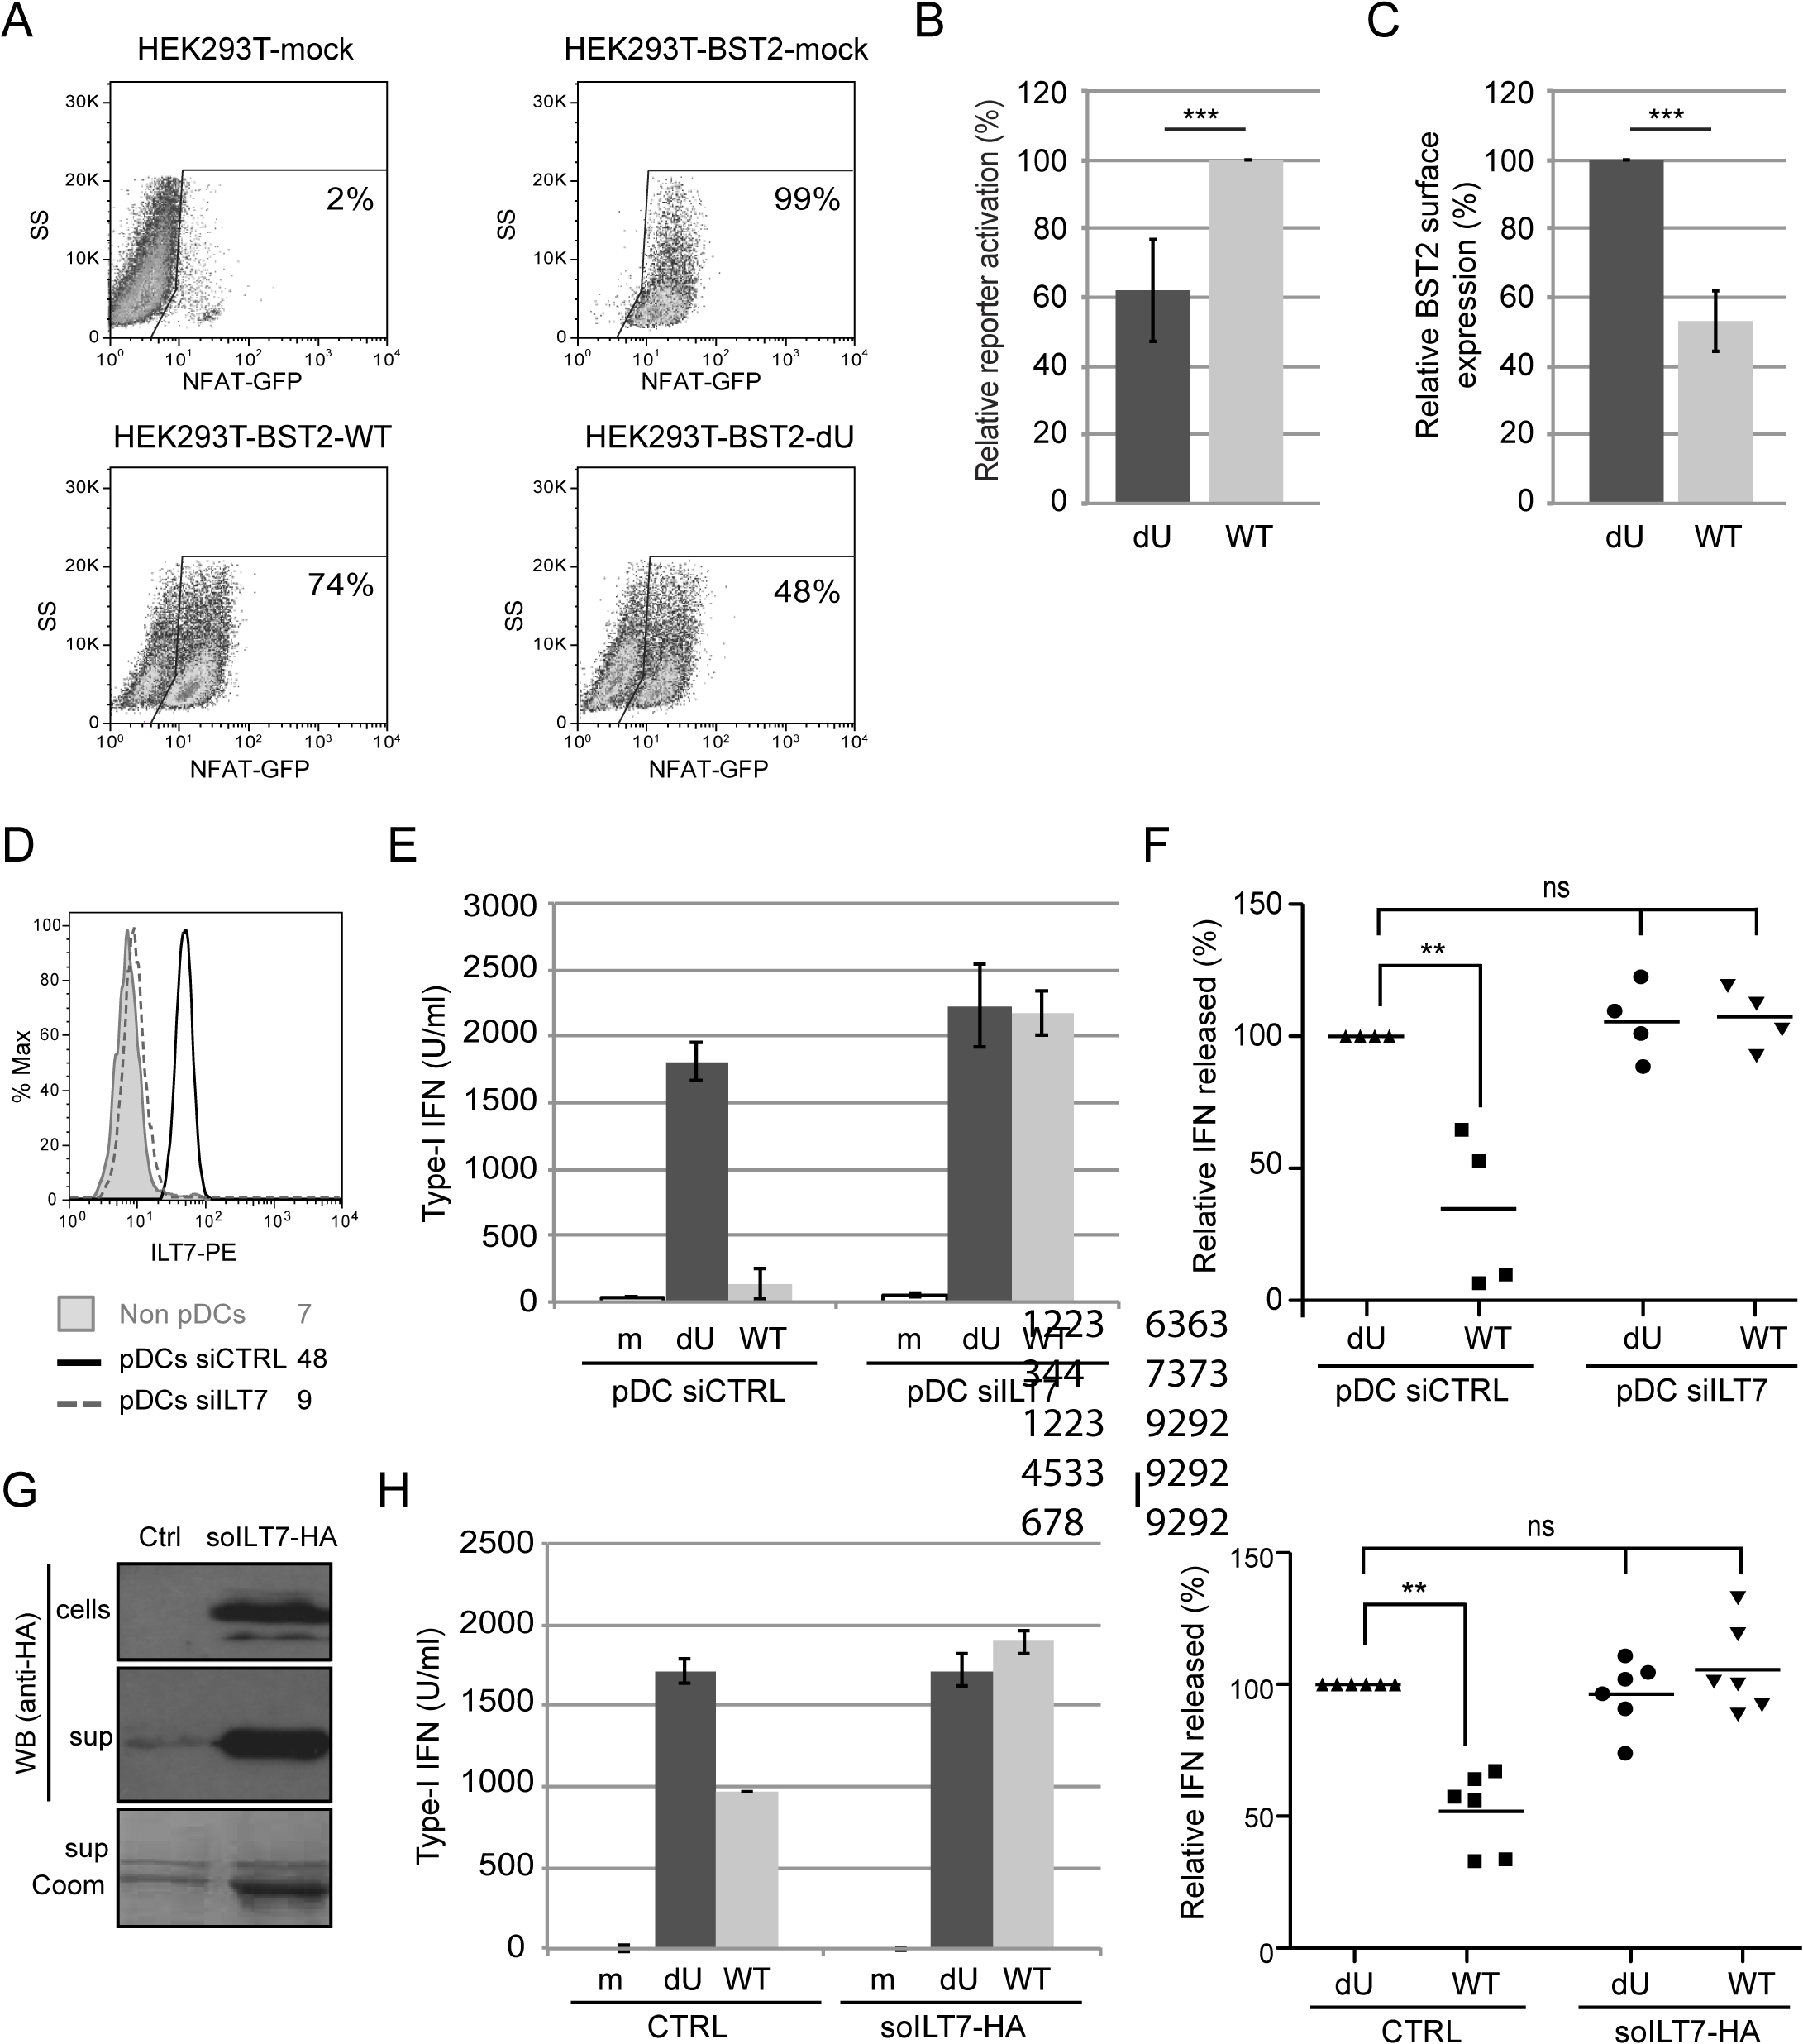 Vpu-mediated control of IFN-I production by pDCs involves engagement and activation of ILT7 by BST2.